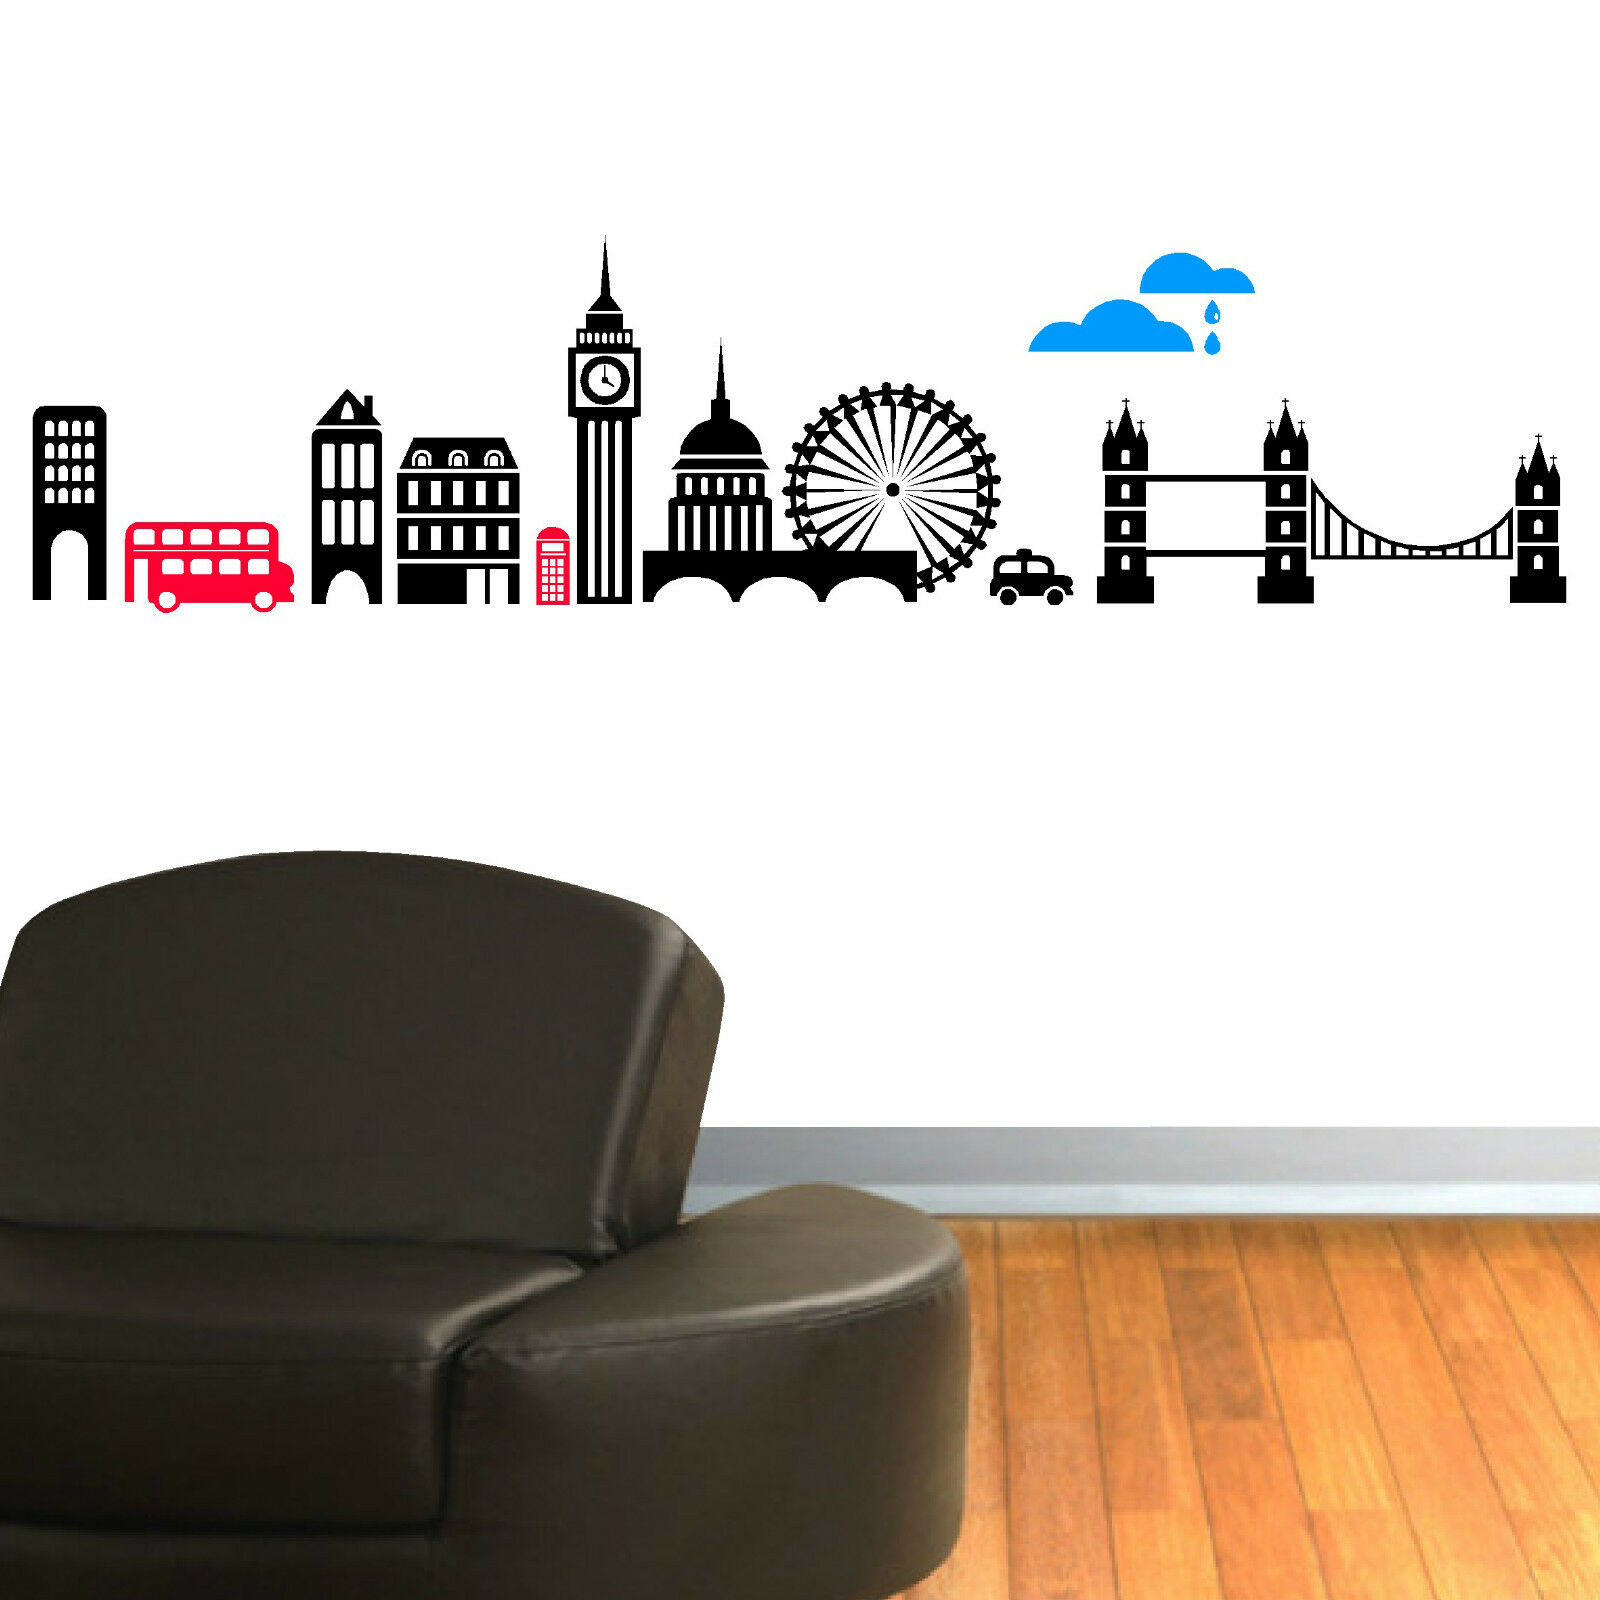 Vinyl Wall Decal London Skyline Vinyl Wall Art Sticker Decal Mural Ebay